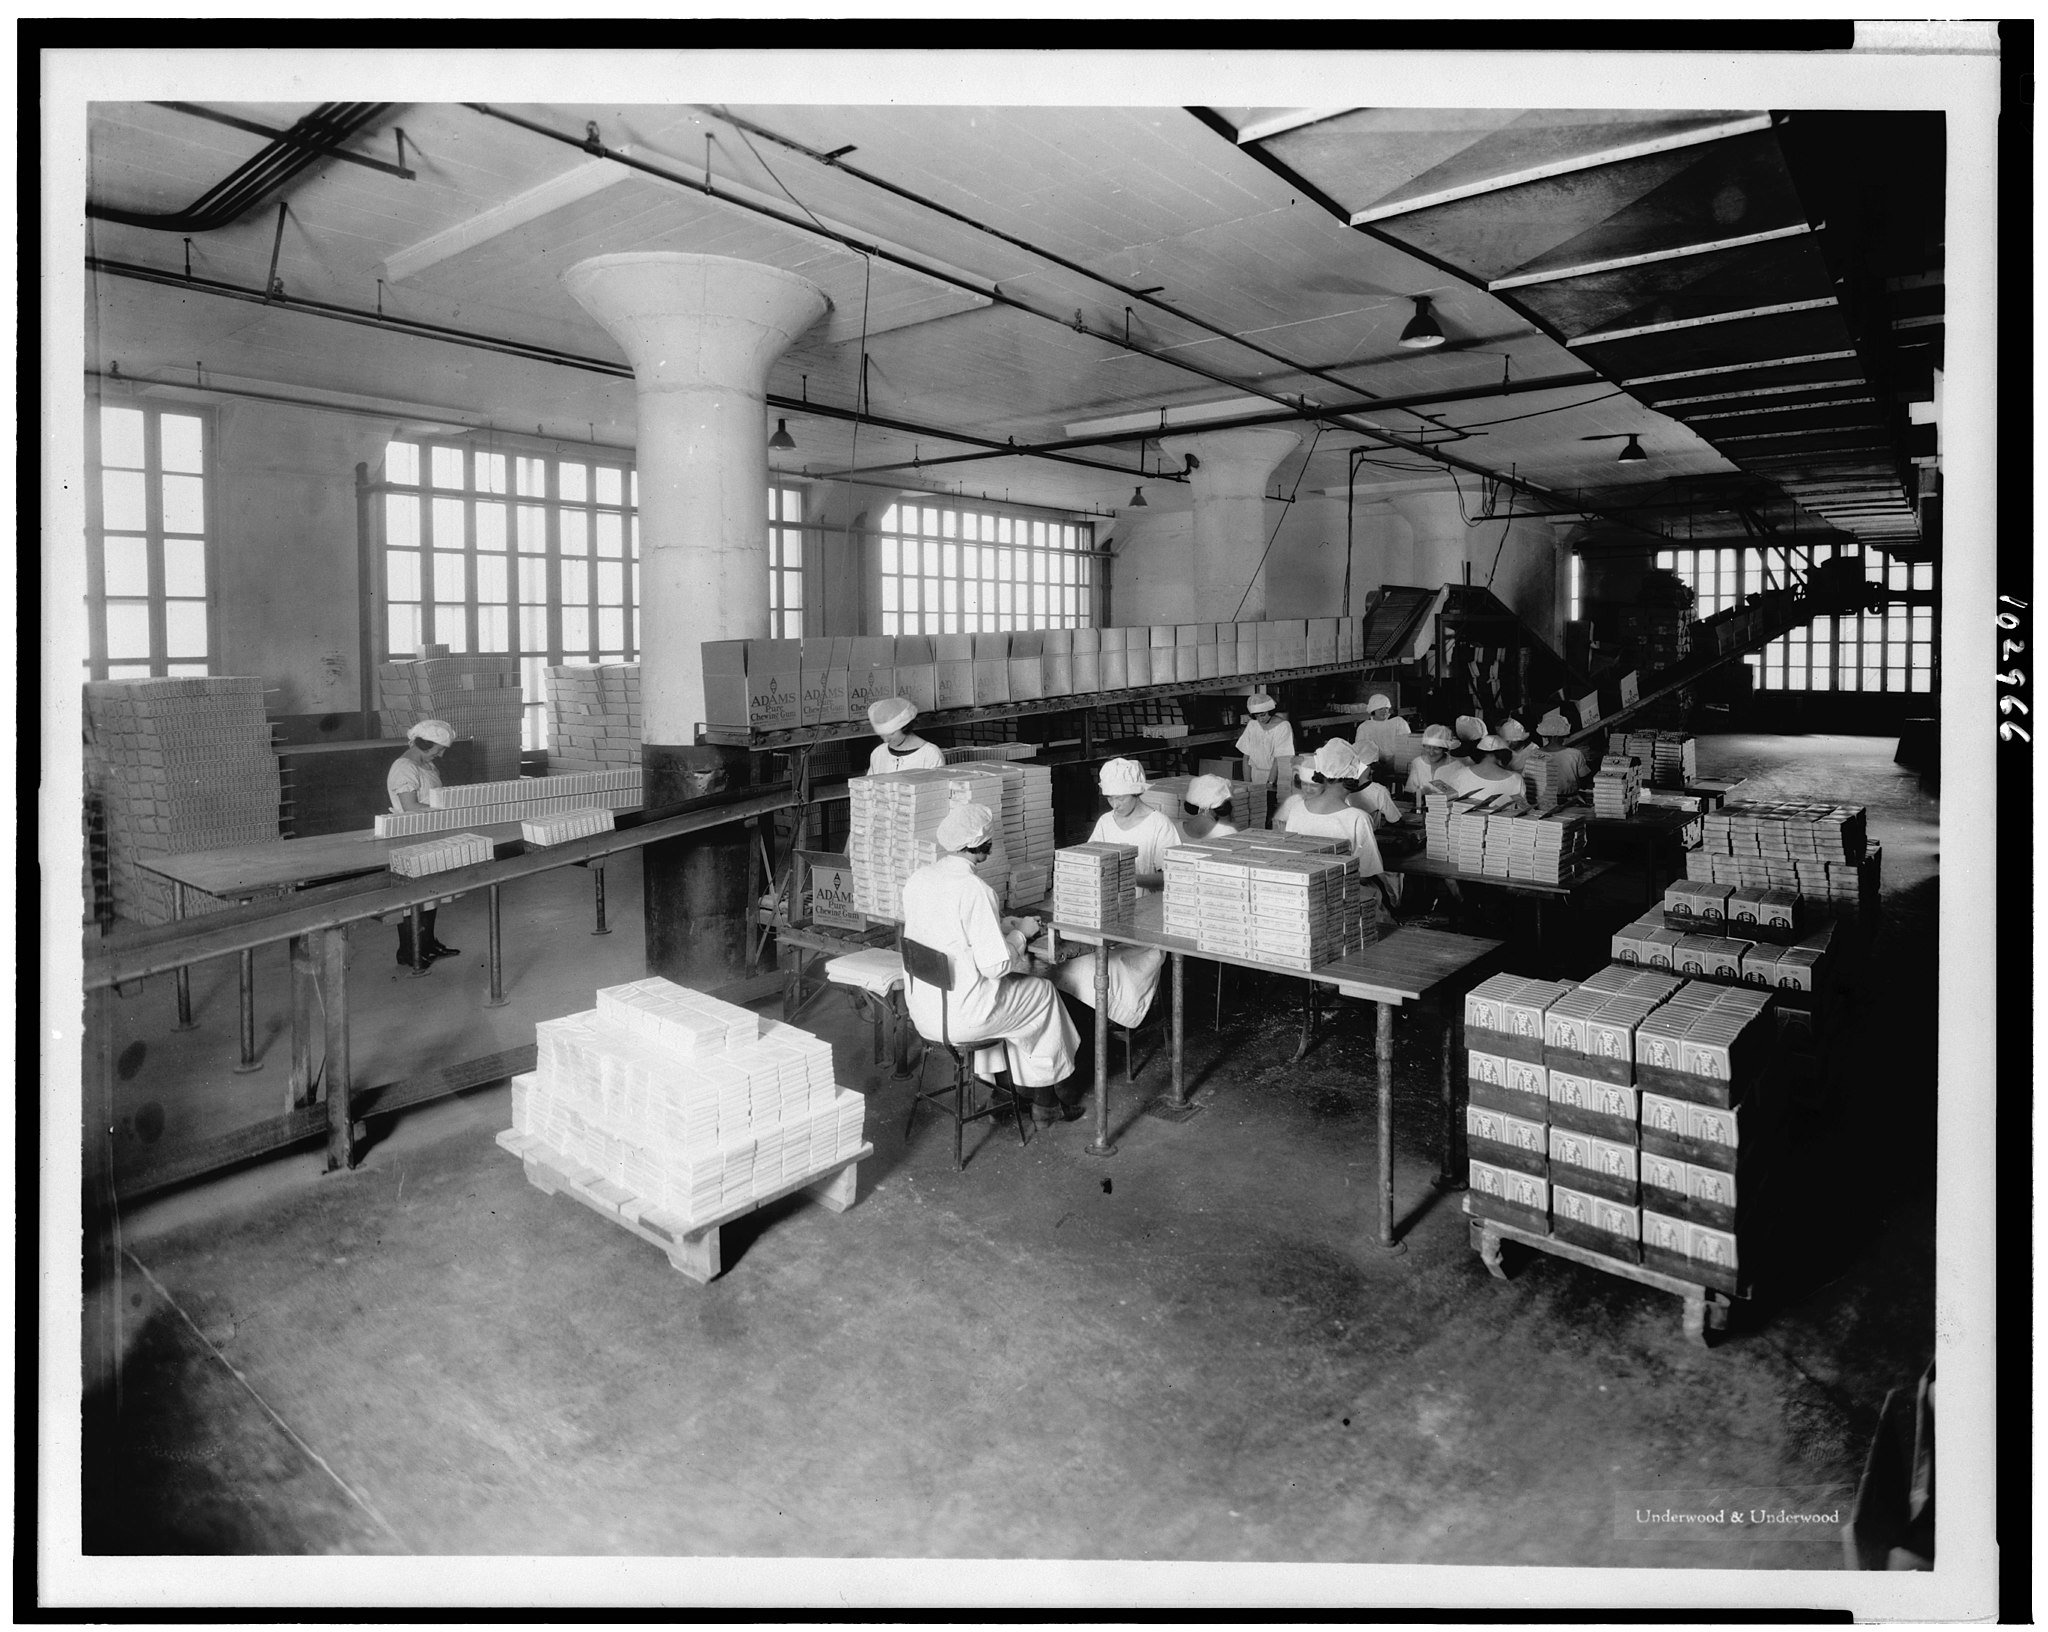 Gum packing department at the American Chicle Company plant, circa 1923. From the Library of Congress / Wikimedia Commons / Public Domain.